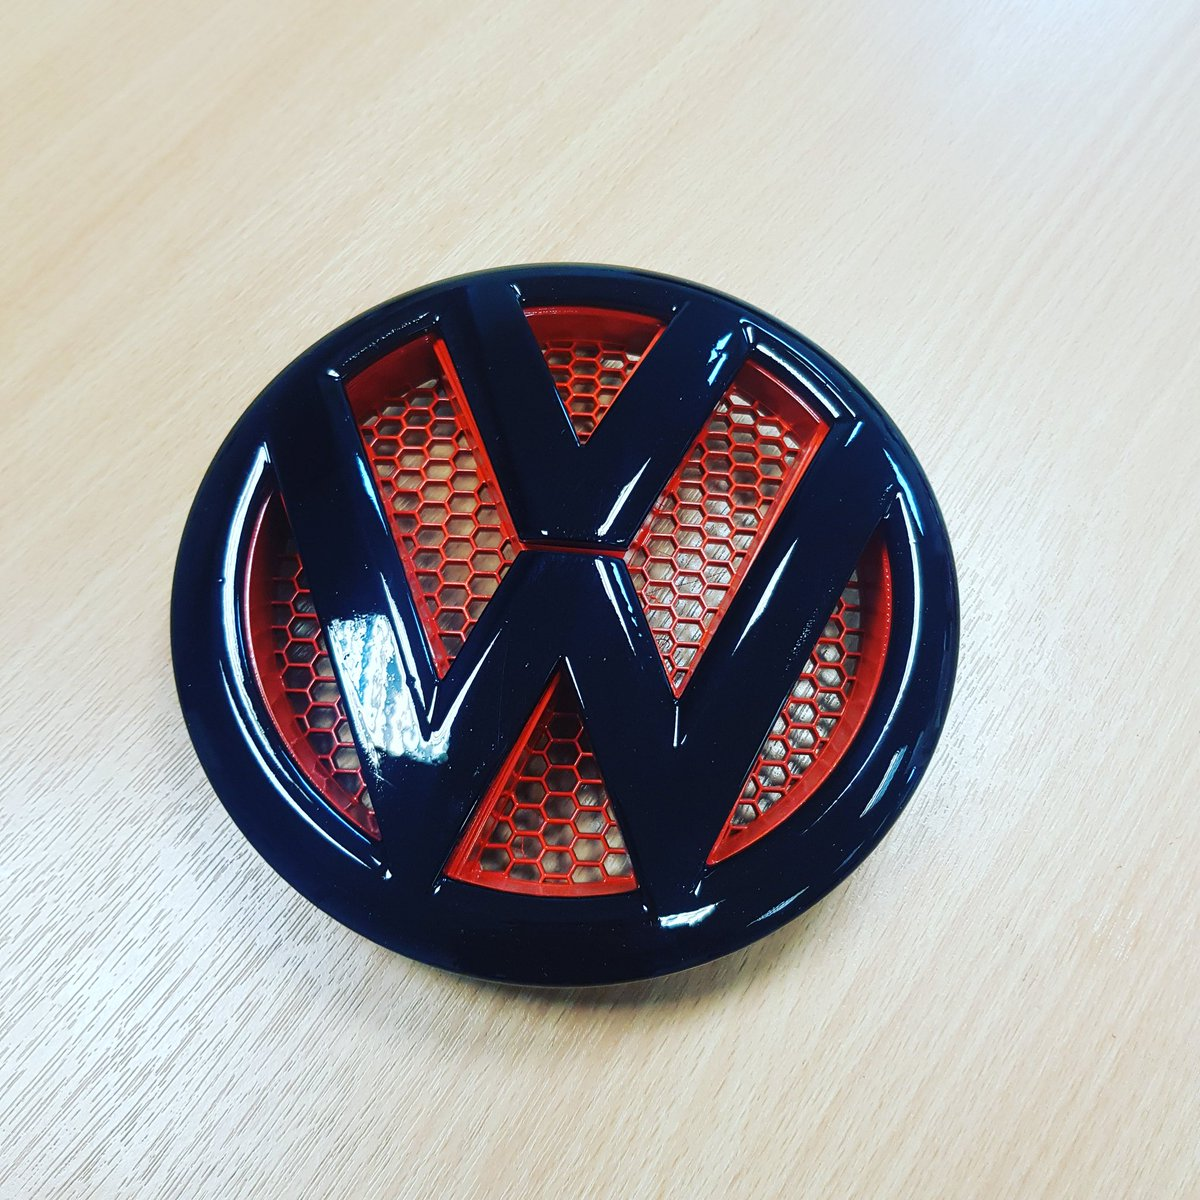 Dub station com on twitter another custom vw t5 1 badge painted today for one of our customers https t co jgufrabwjd